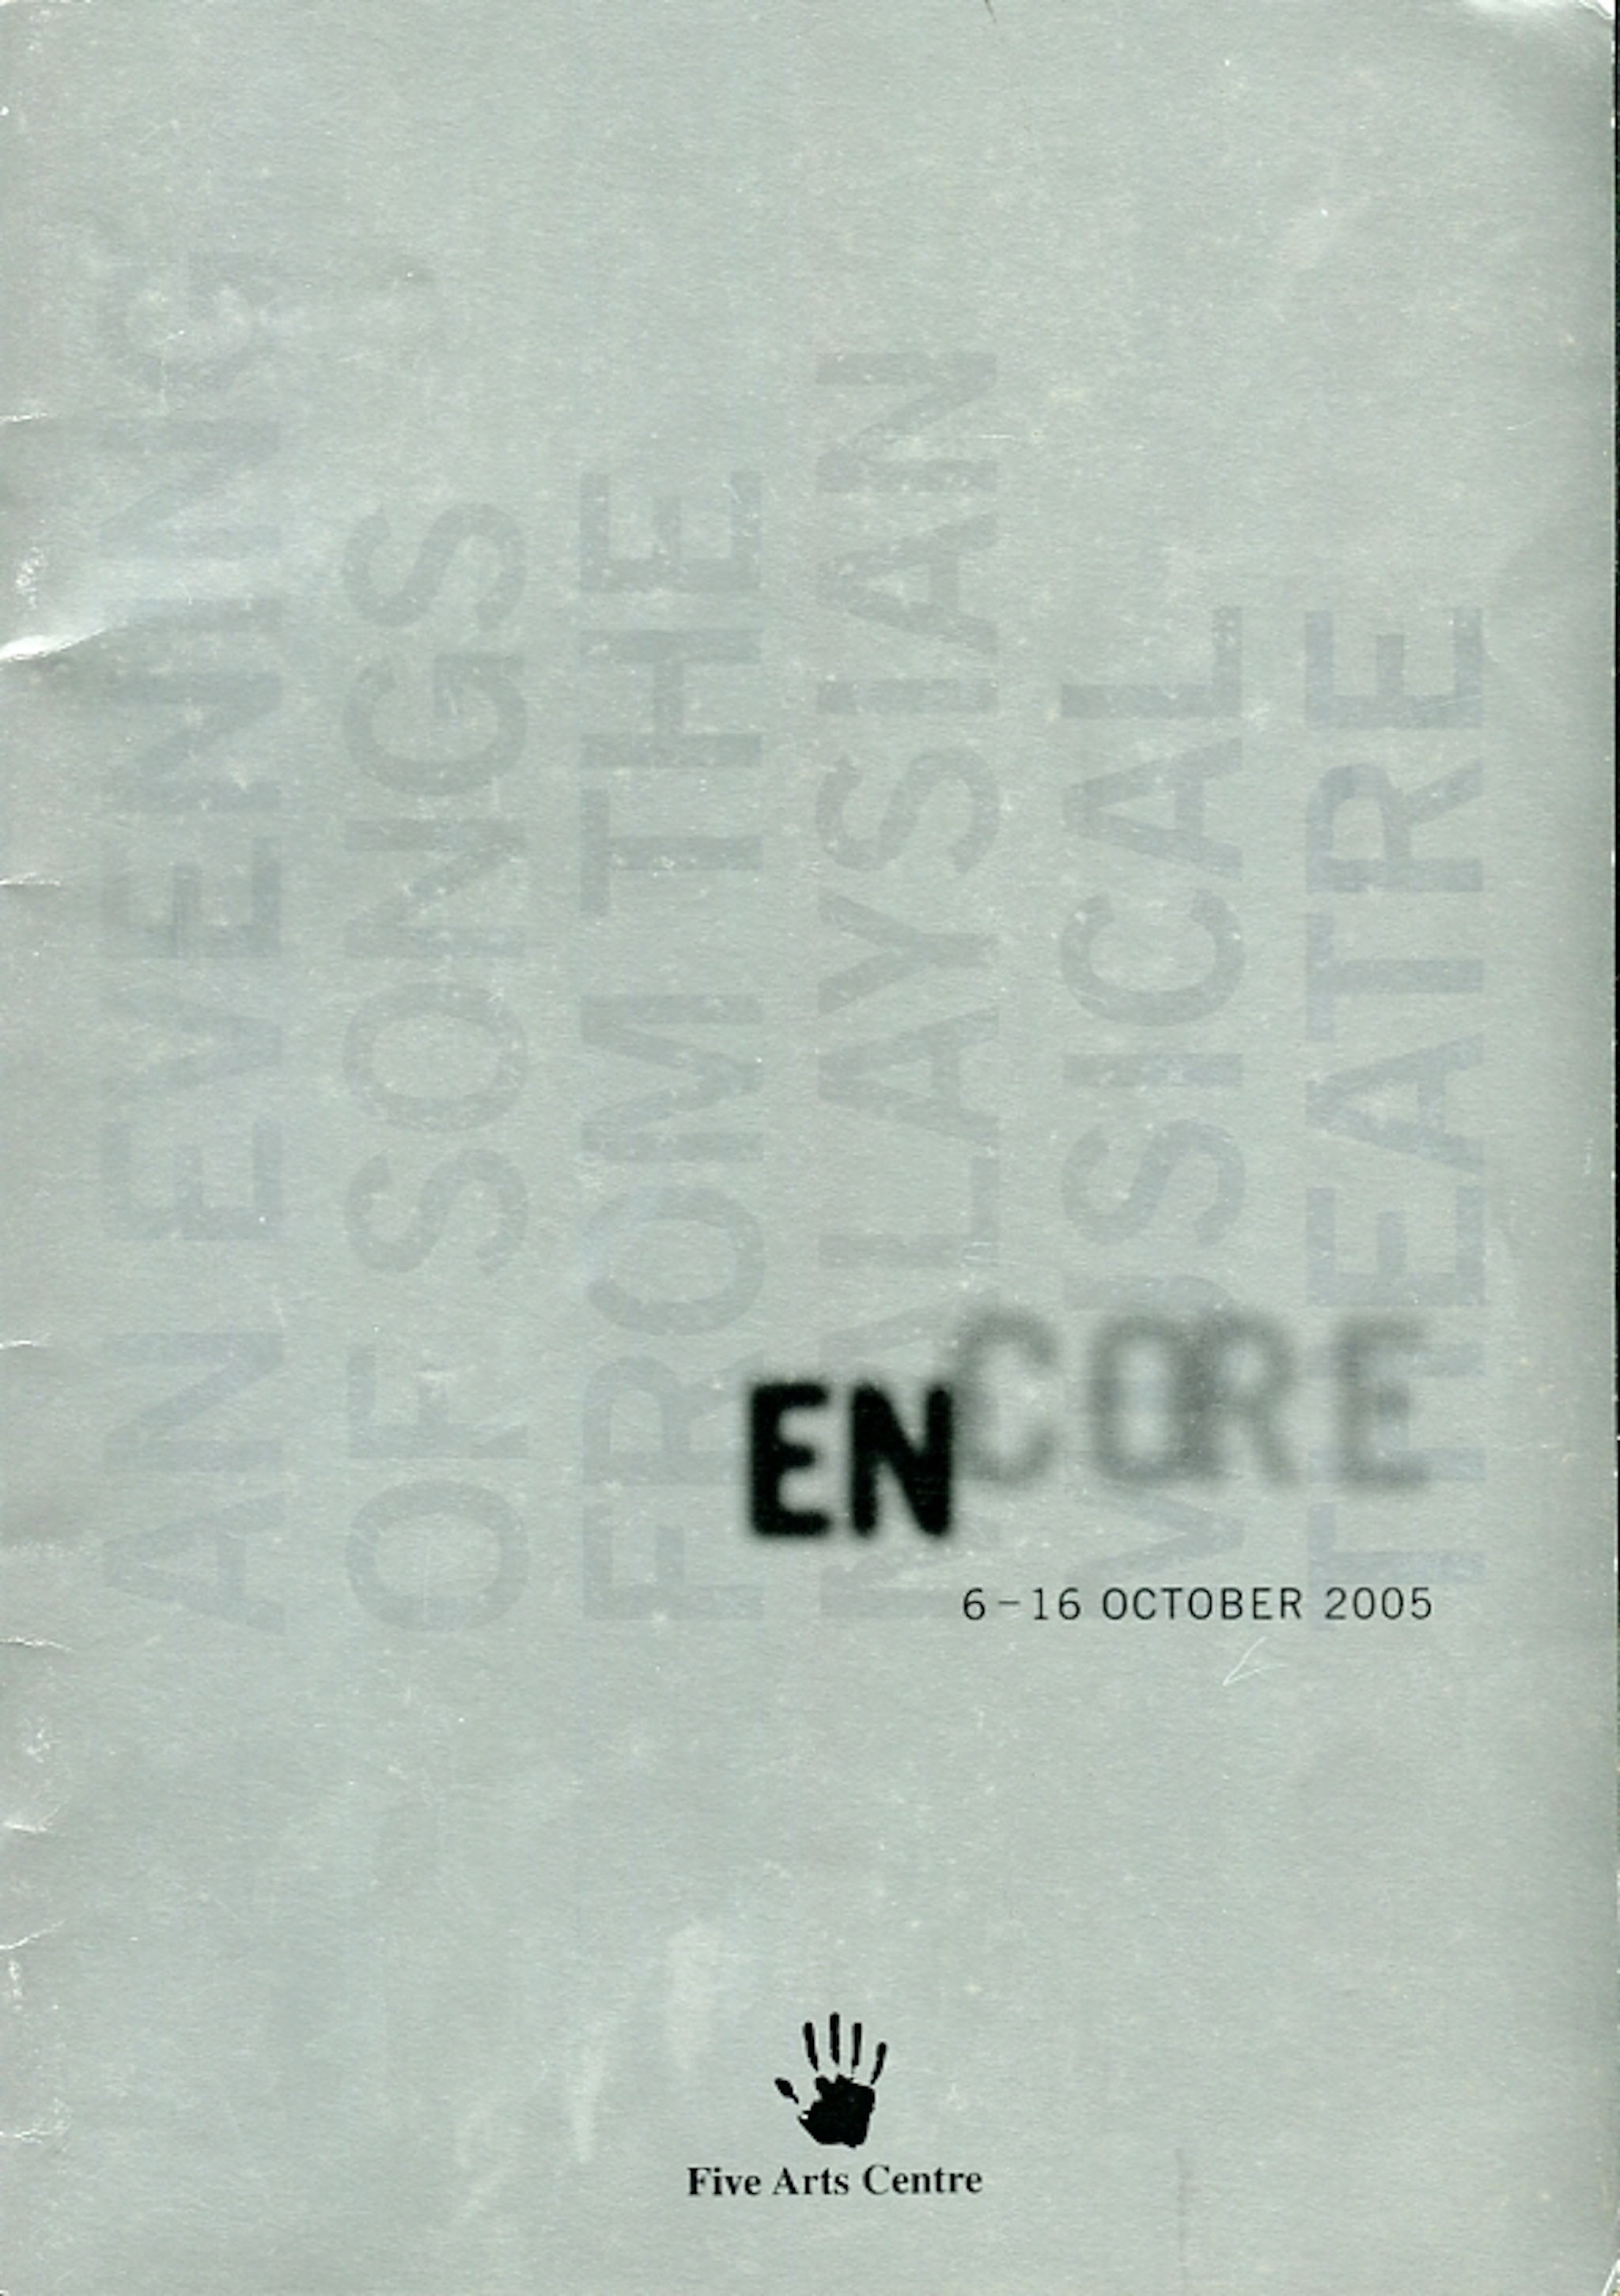 2005 Encore cover